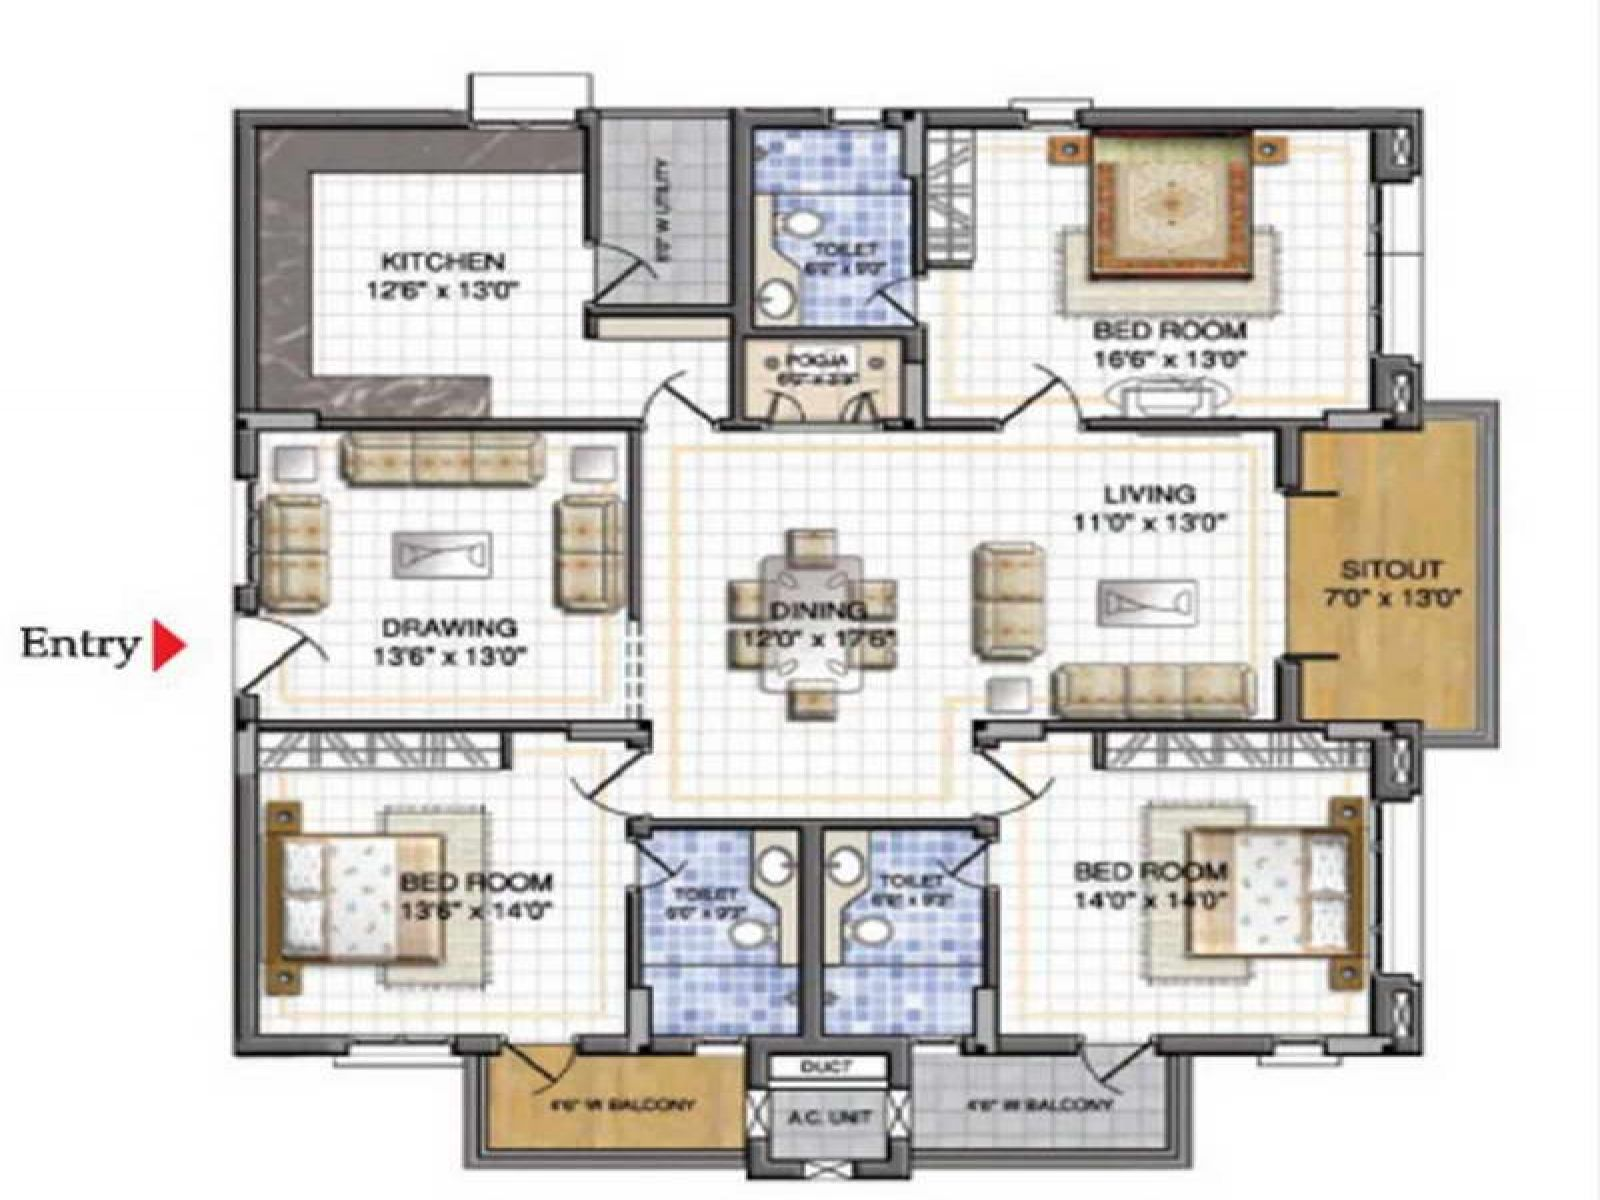 Sweet home 3d plans google search house designs pinterest layout online house plans House designs and floor plans software